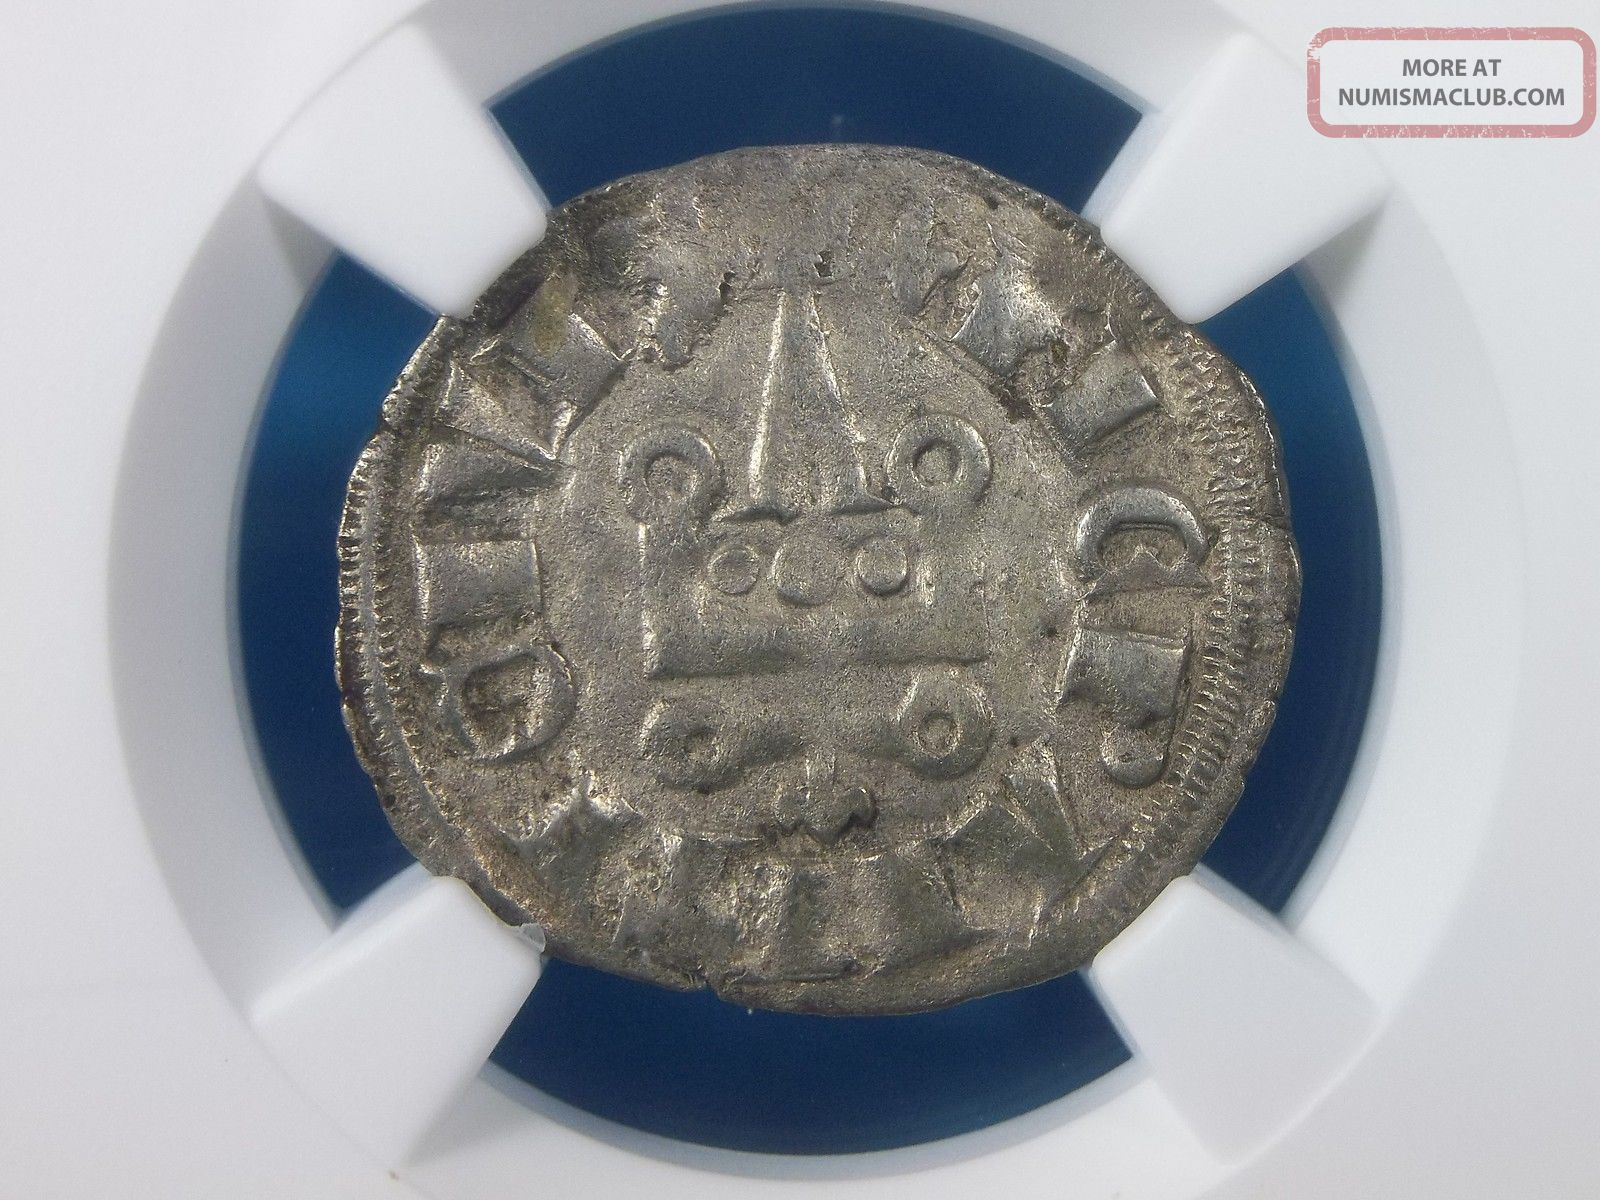 Silver Crusader Denier Of Philip Of Taranto 1294 - 1313 Ad Ngc Vf 35 2004 Coins: Medieval photo